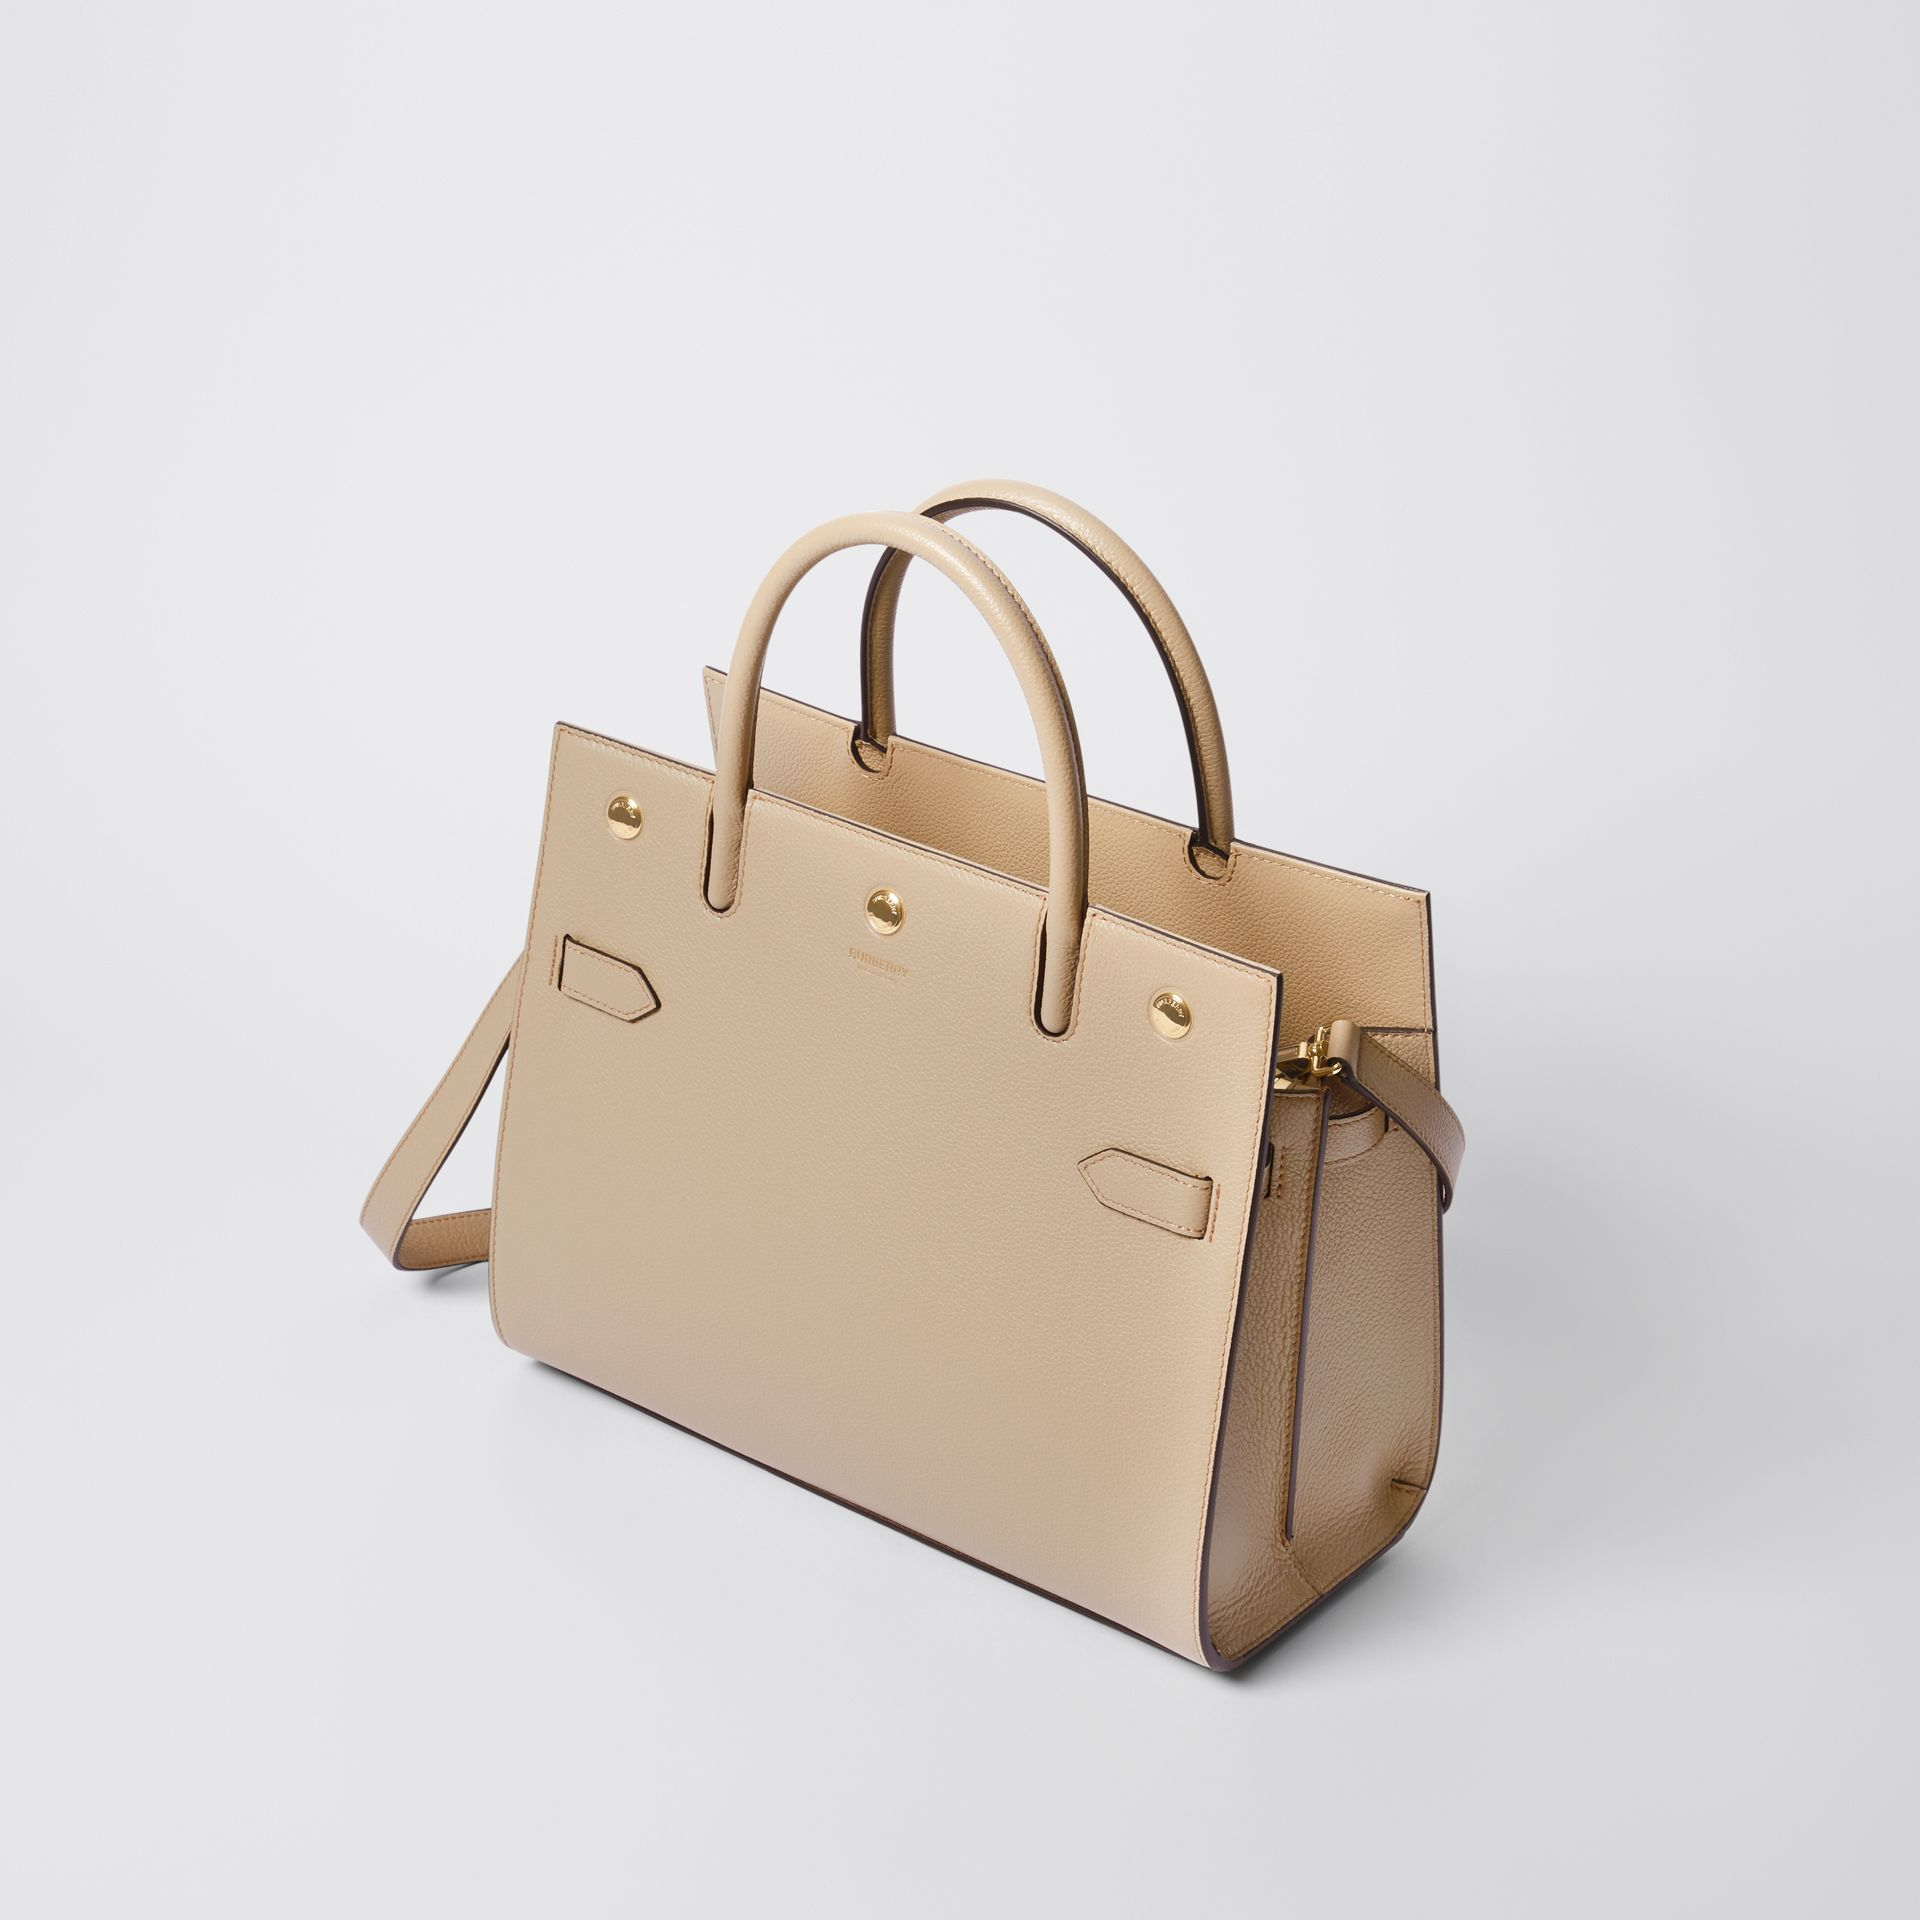 Small Leather Two-handle Title Bag in Light Beige - Women | Burberry Hong Kong S.A.R - gallery image 3